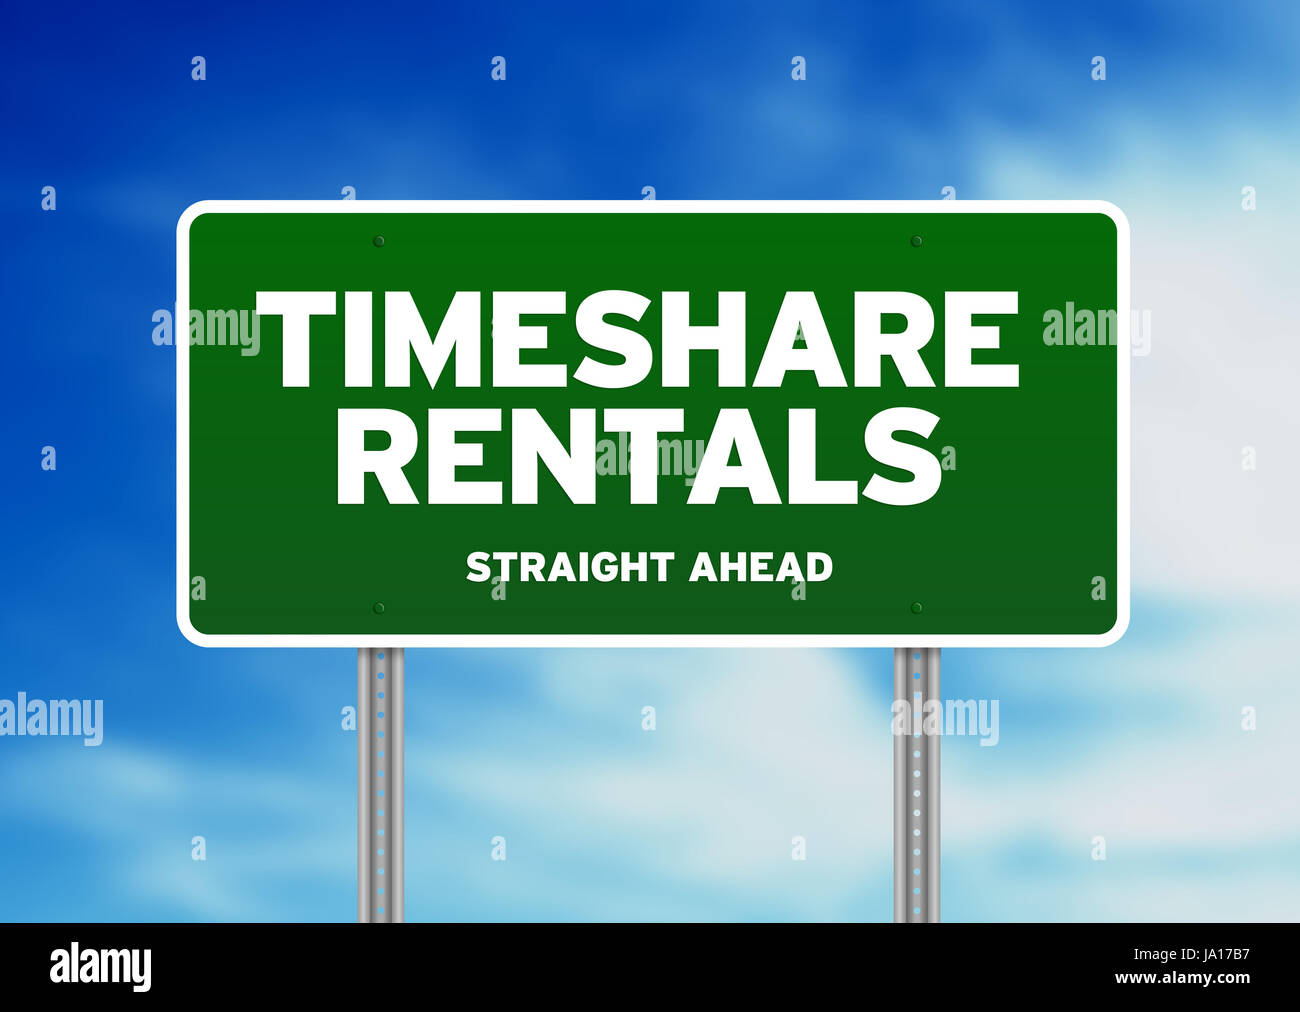 Green Timeshare Rentals highway sign on Cloud Background. - Stock Image